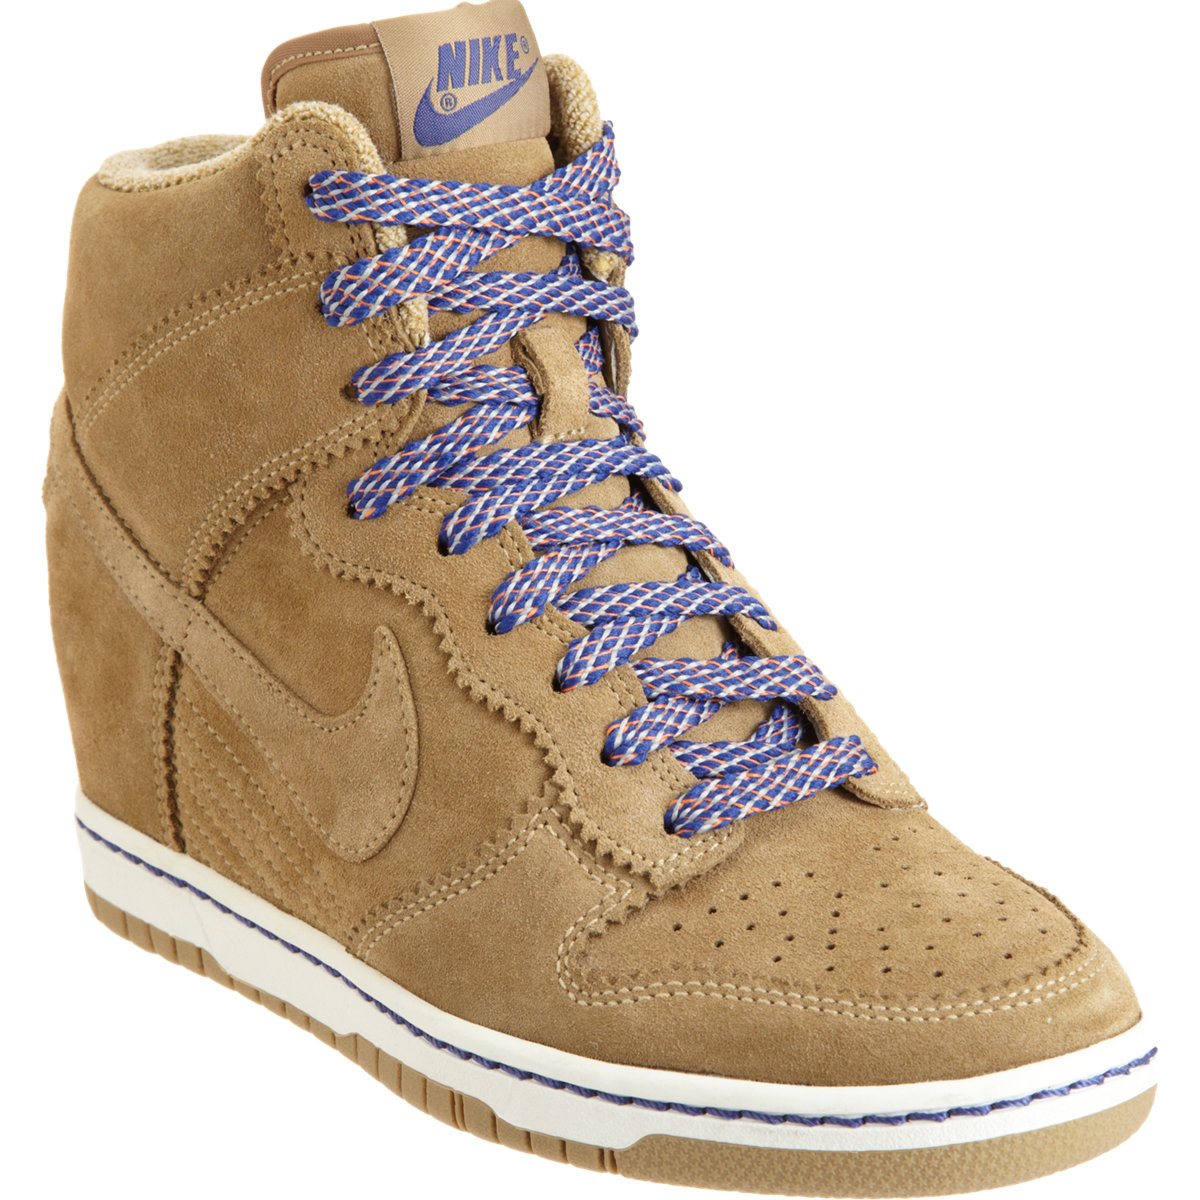 free shipping 5f4f2 b1f7f ... ireland vapor sneaker d03cb b0be0 lyst nike dunk sky high wedge in  brown 34b99 17664